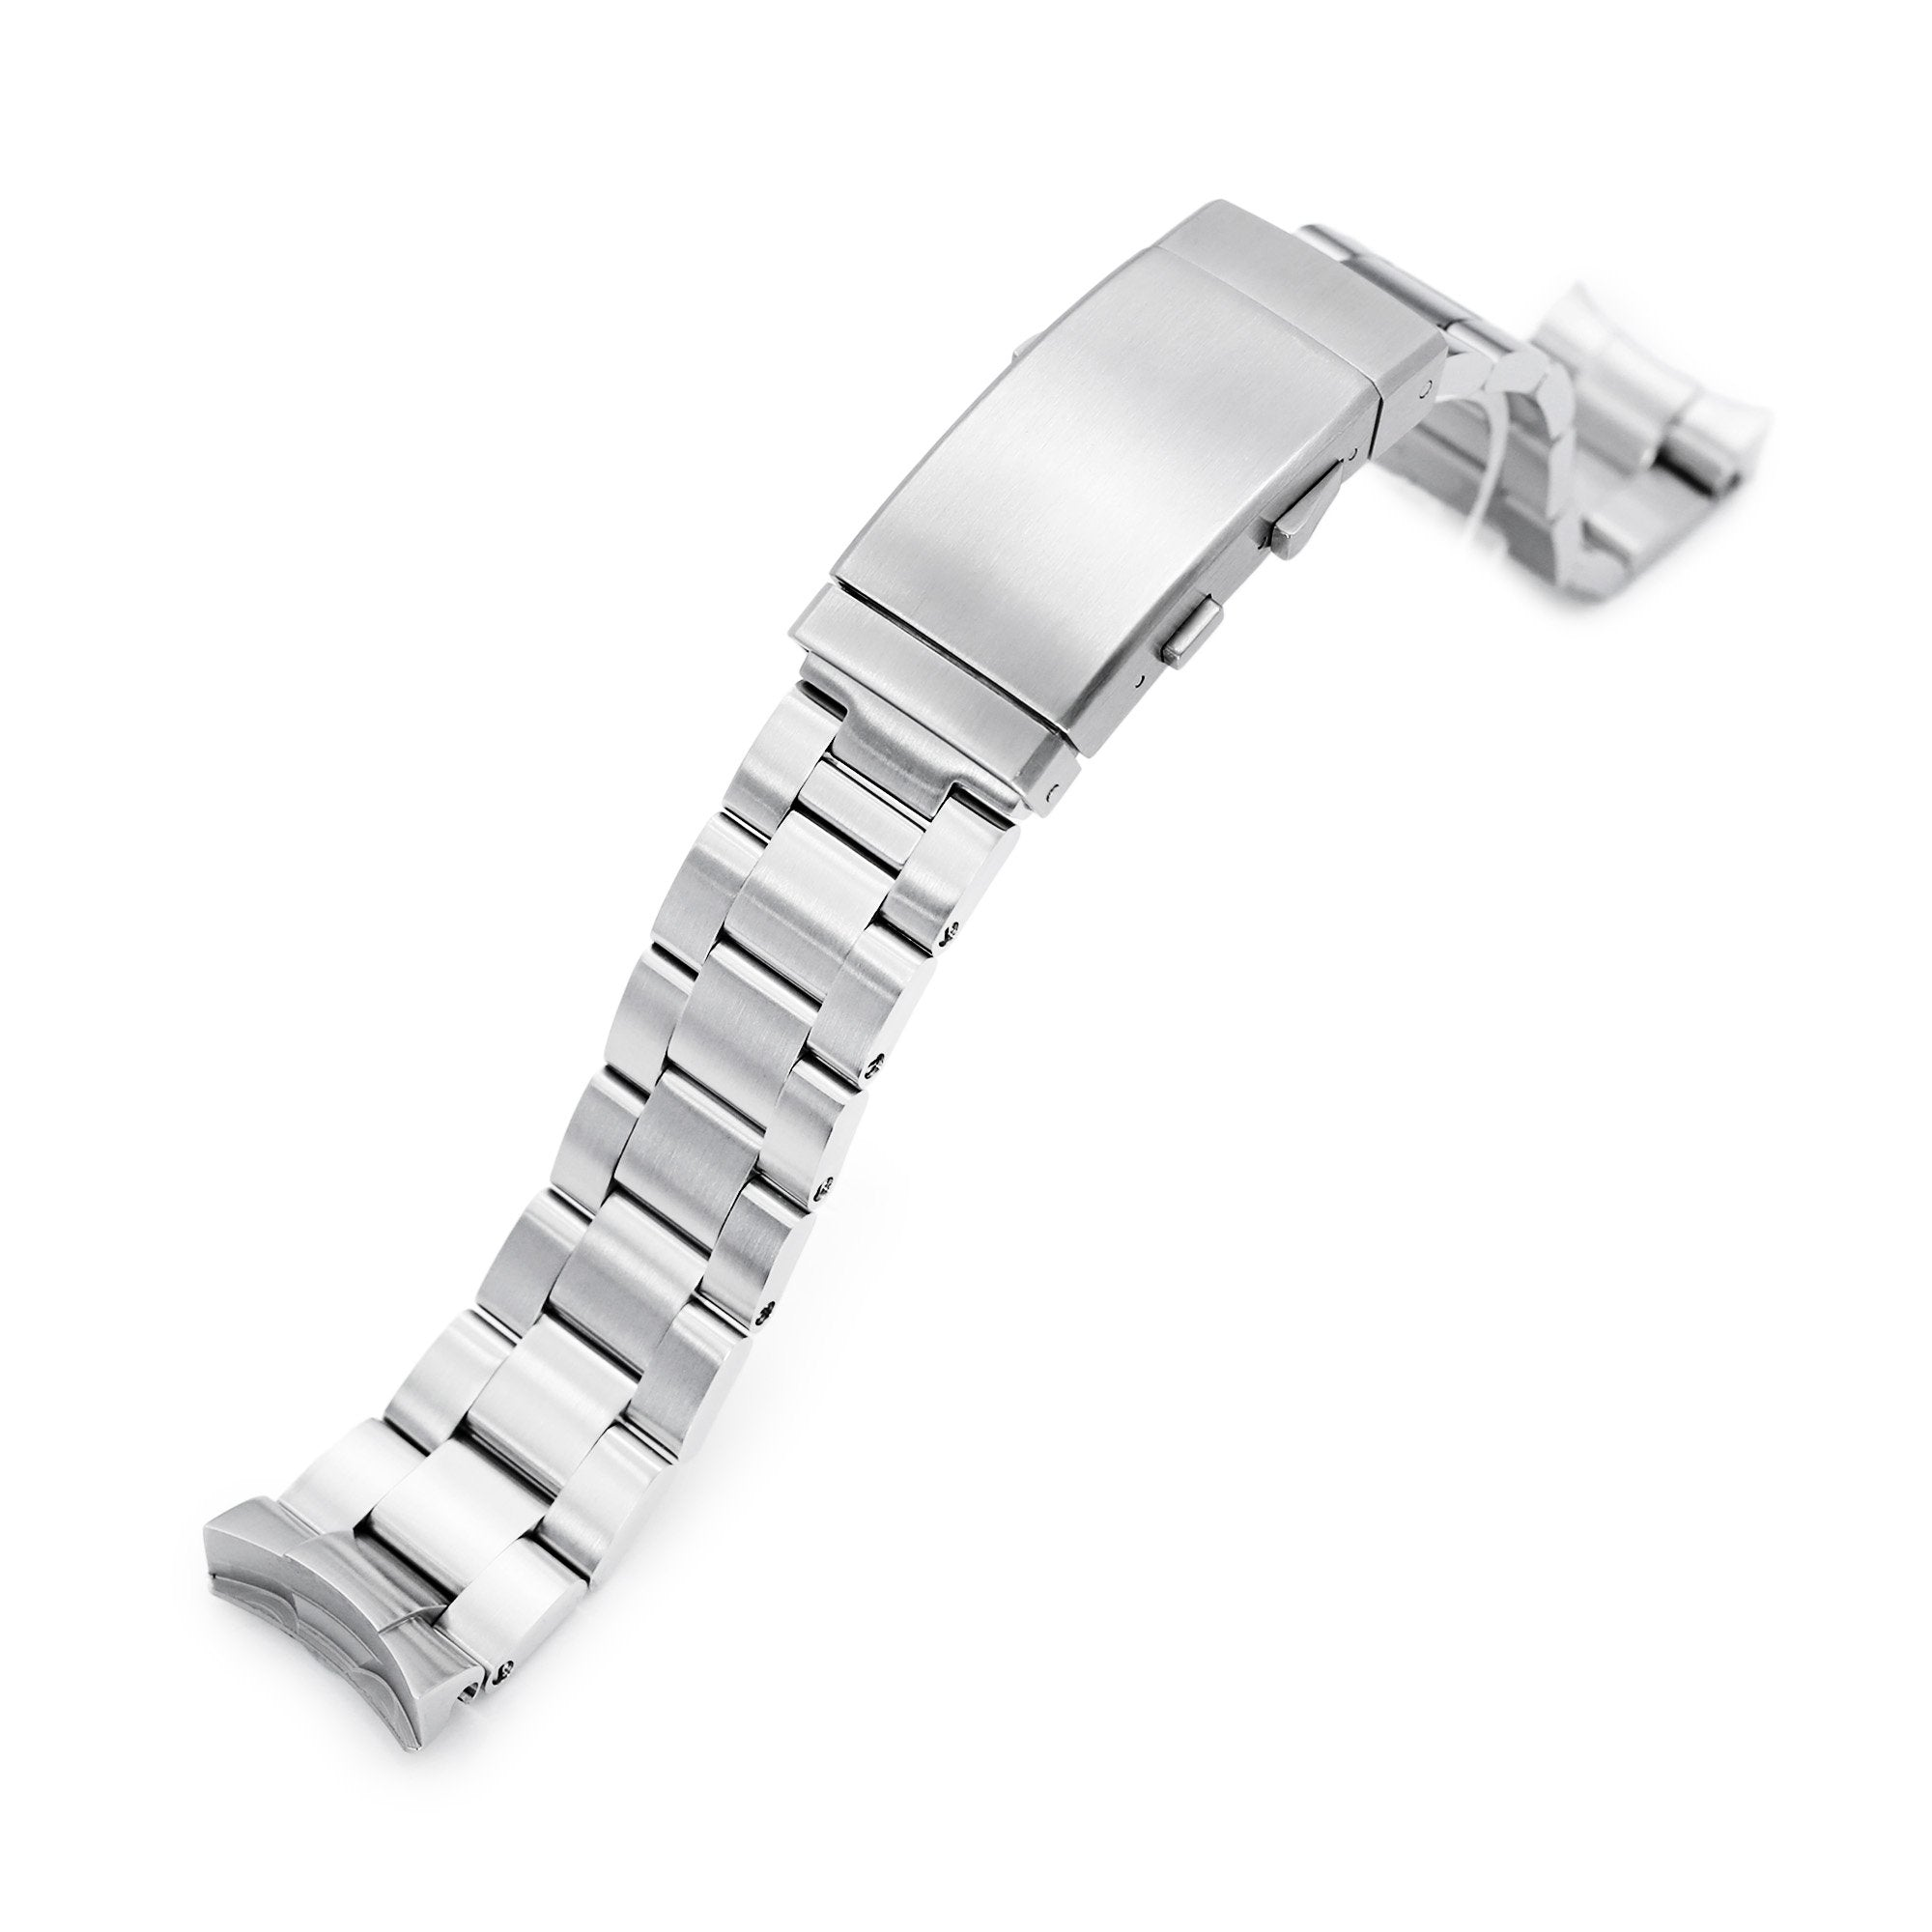 20mm Super-O Boyer 316L Stainless Steel Watch Band for New Seiko 5 40mm, Brushed Wetsuit Ratchet Buckle Strapcode Watch Bands